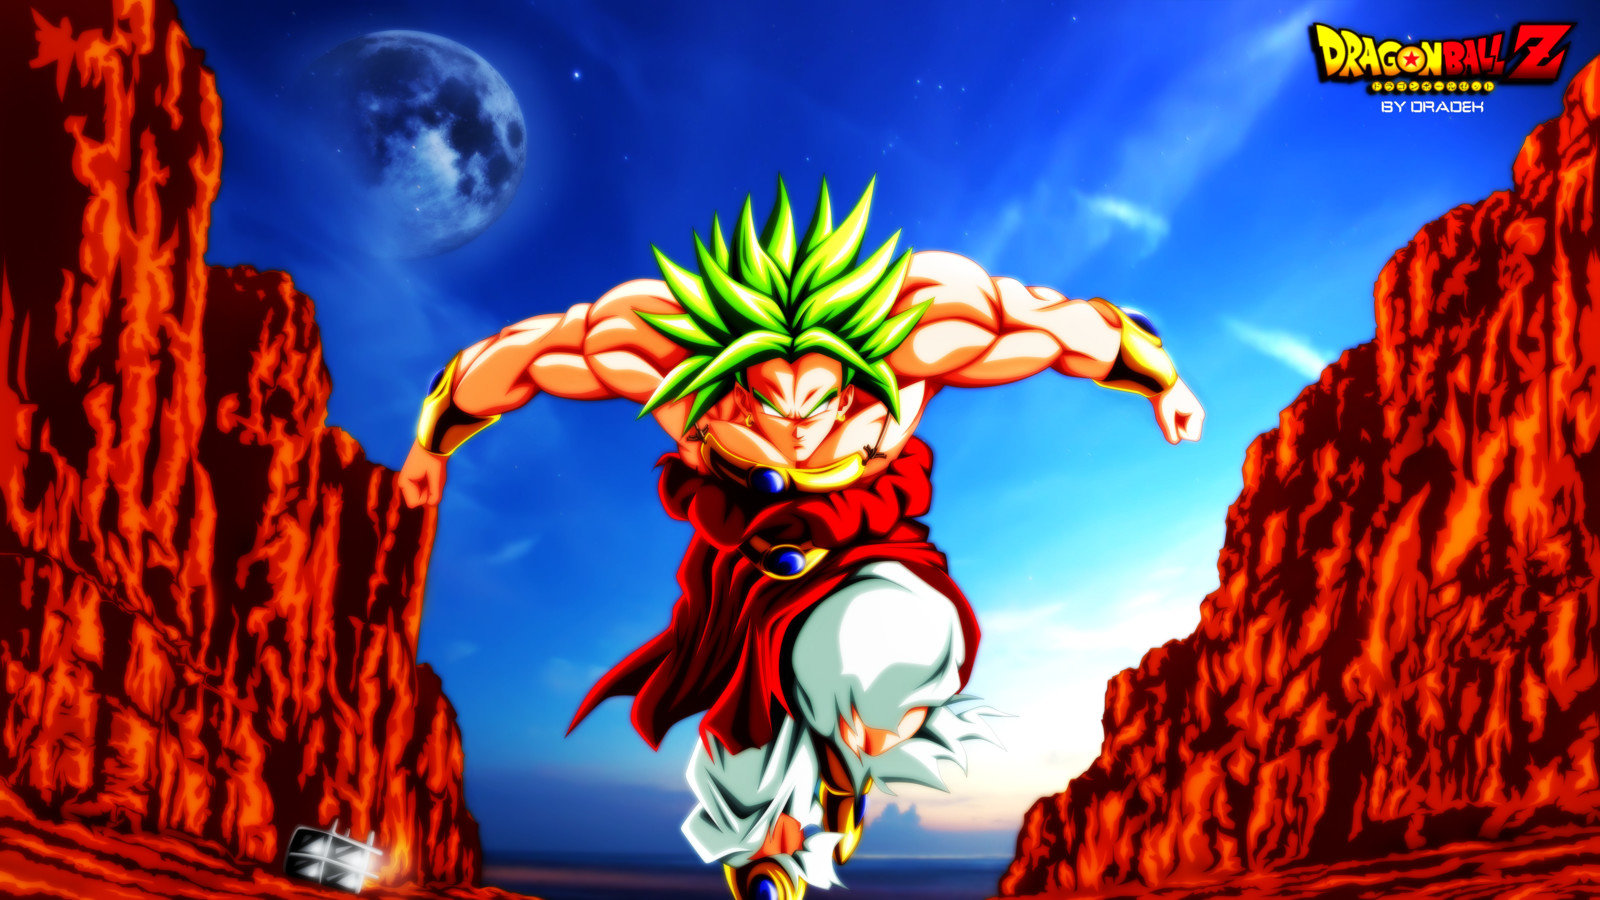 Broly Dragon Ball Wallpapers Hd For Desktop Backgrounds